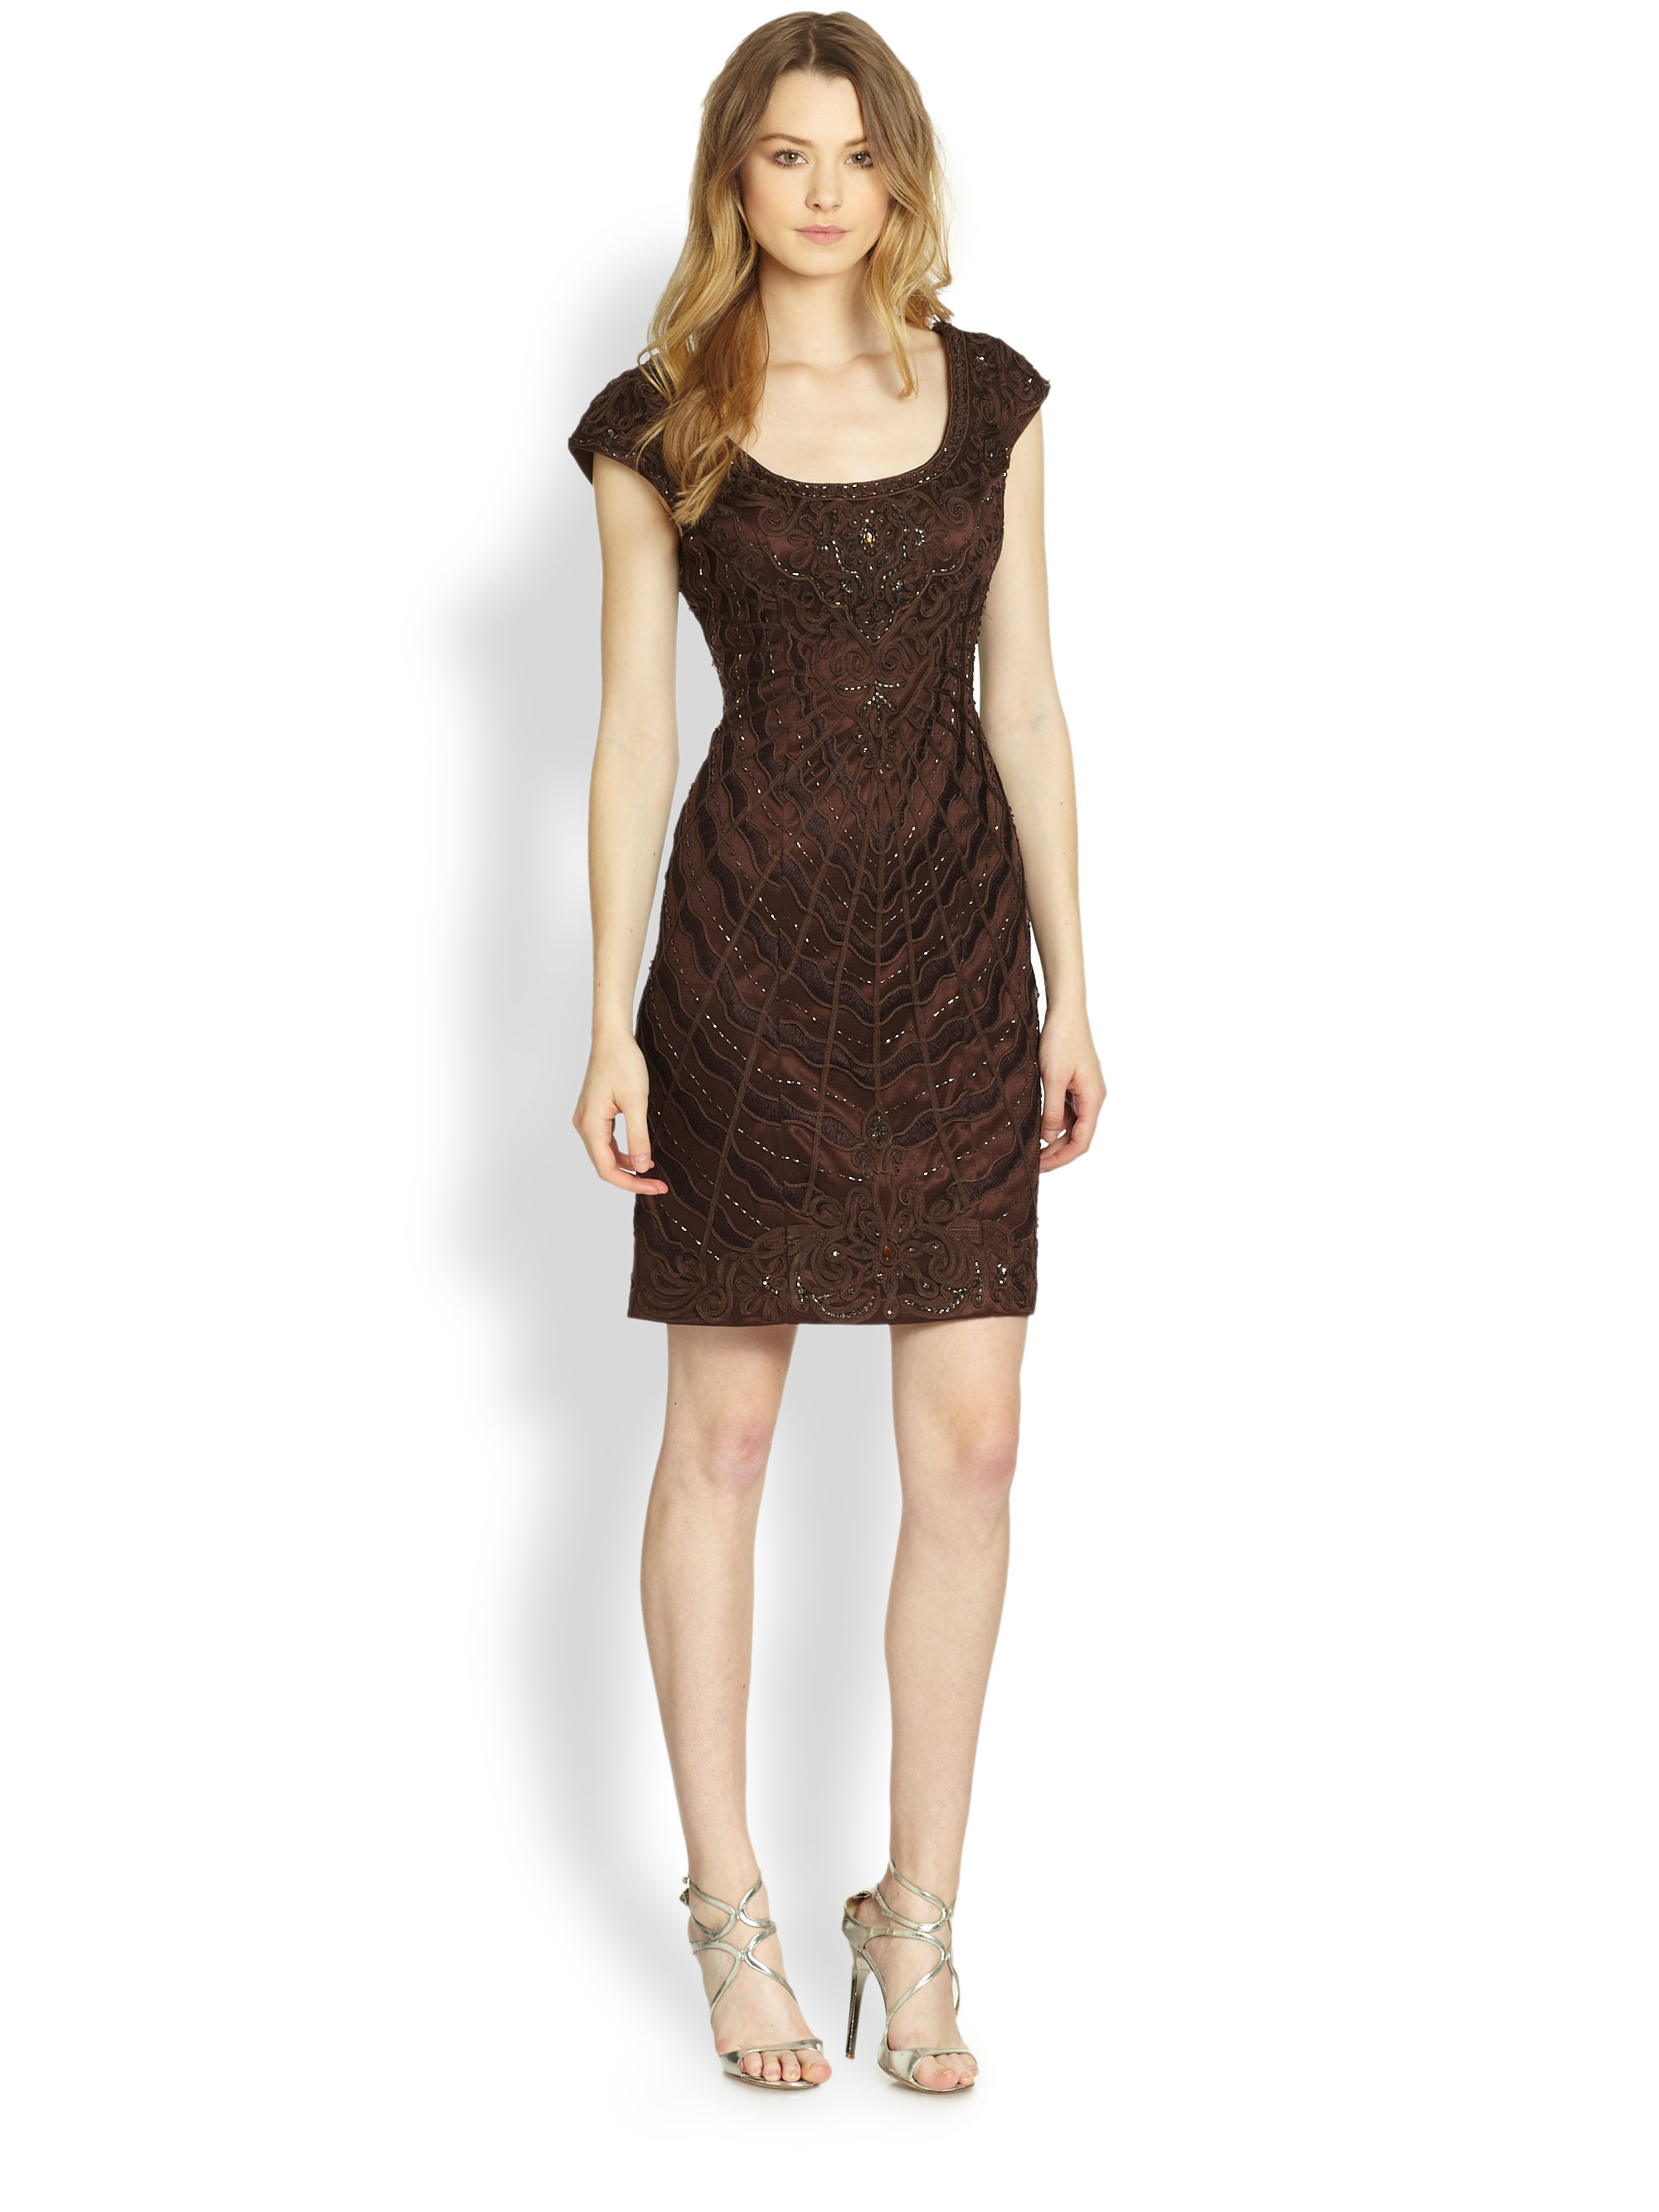 Brown Cocktail Dress Dress Yp